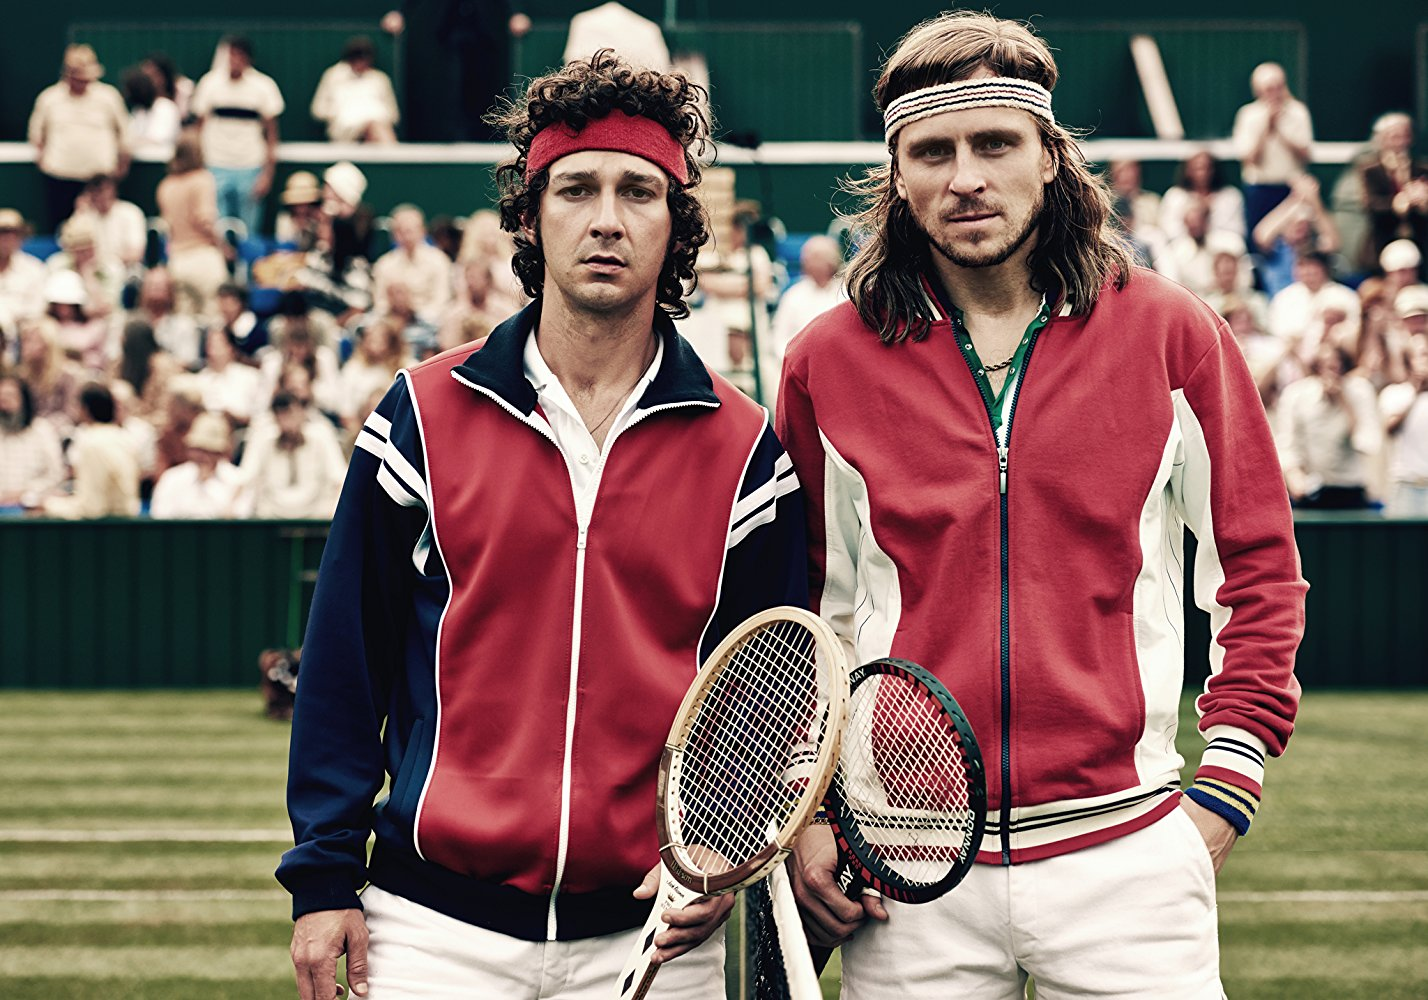 borg vs. mcenroe, movie review, lucas mirabella